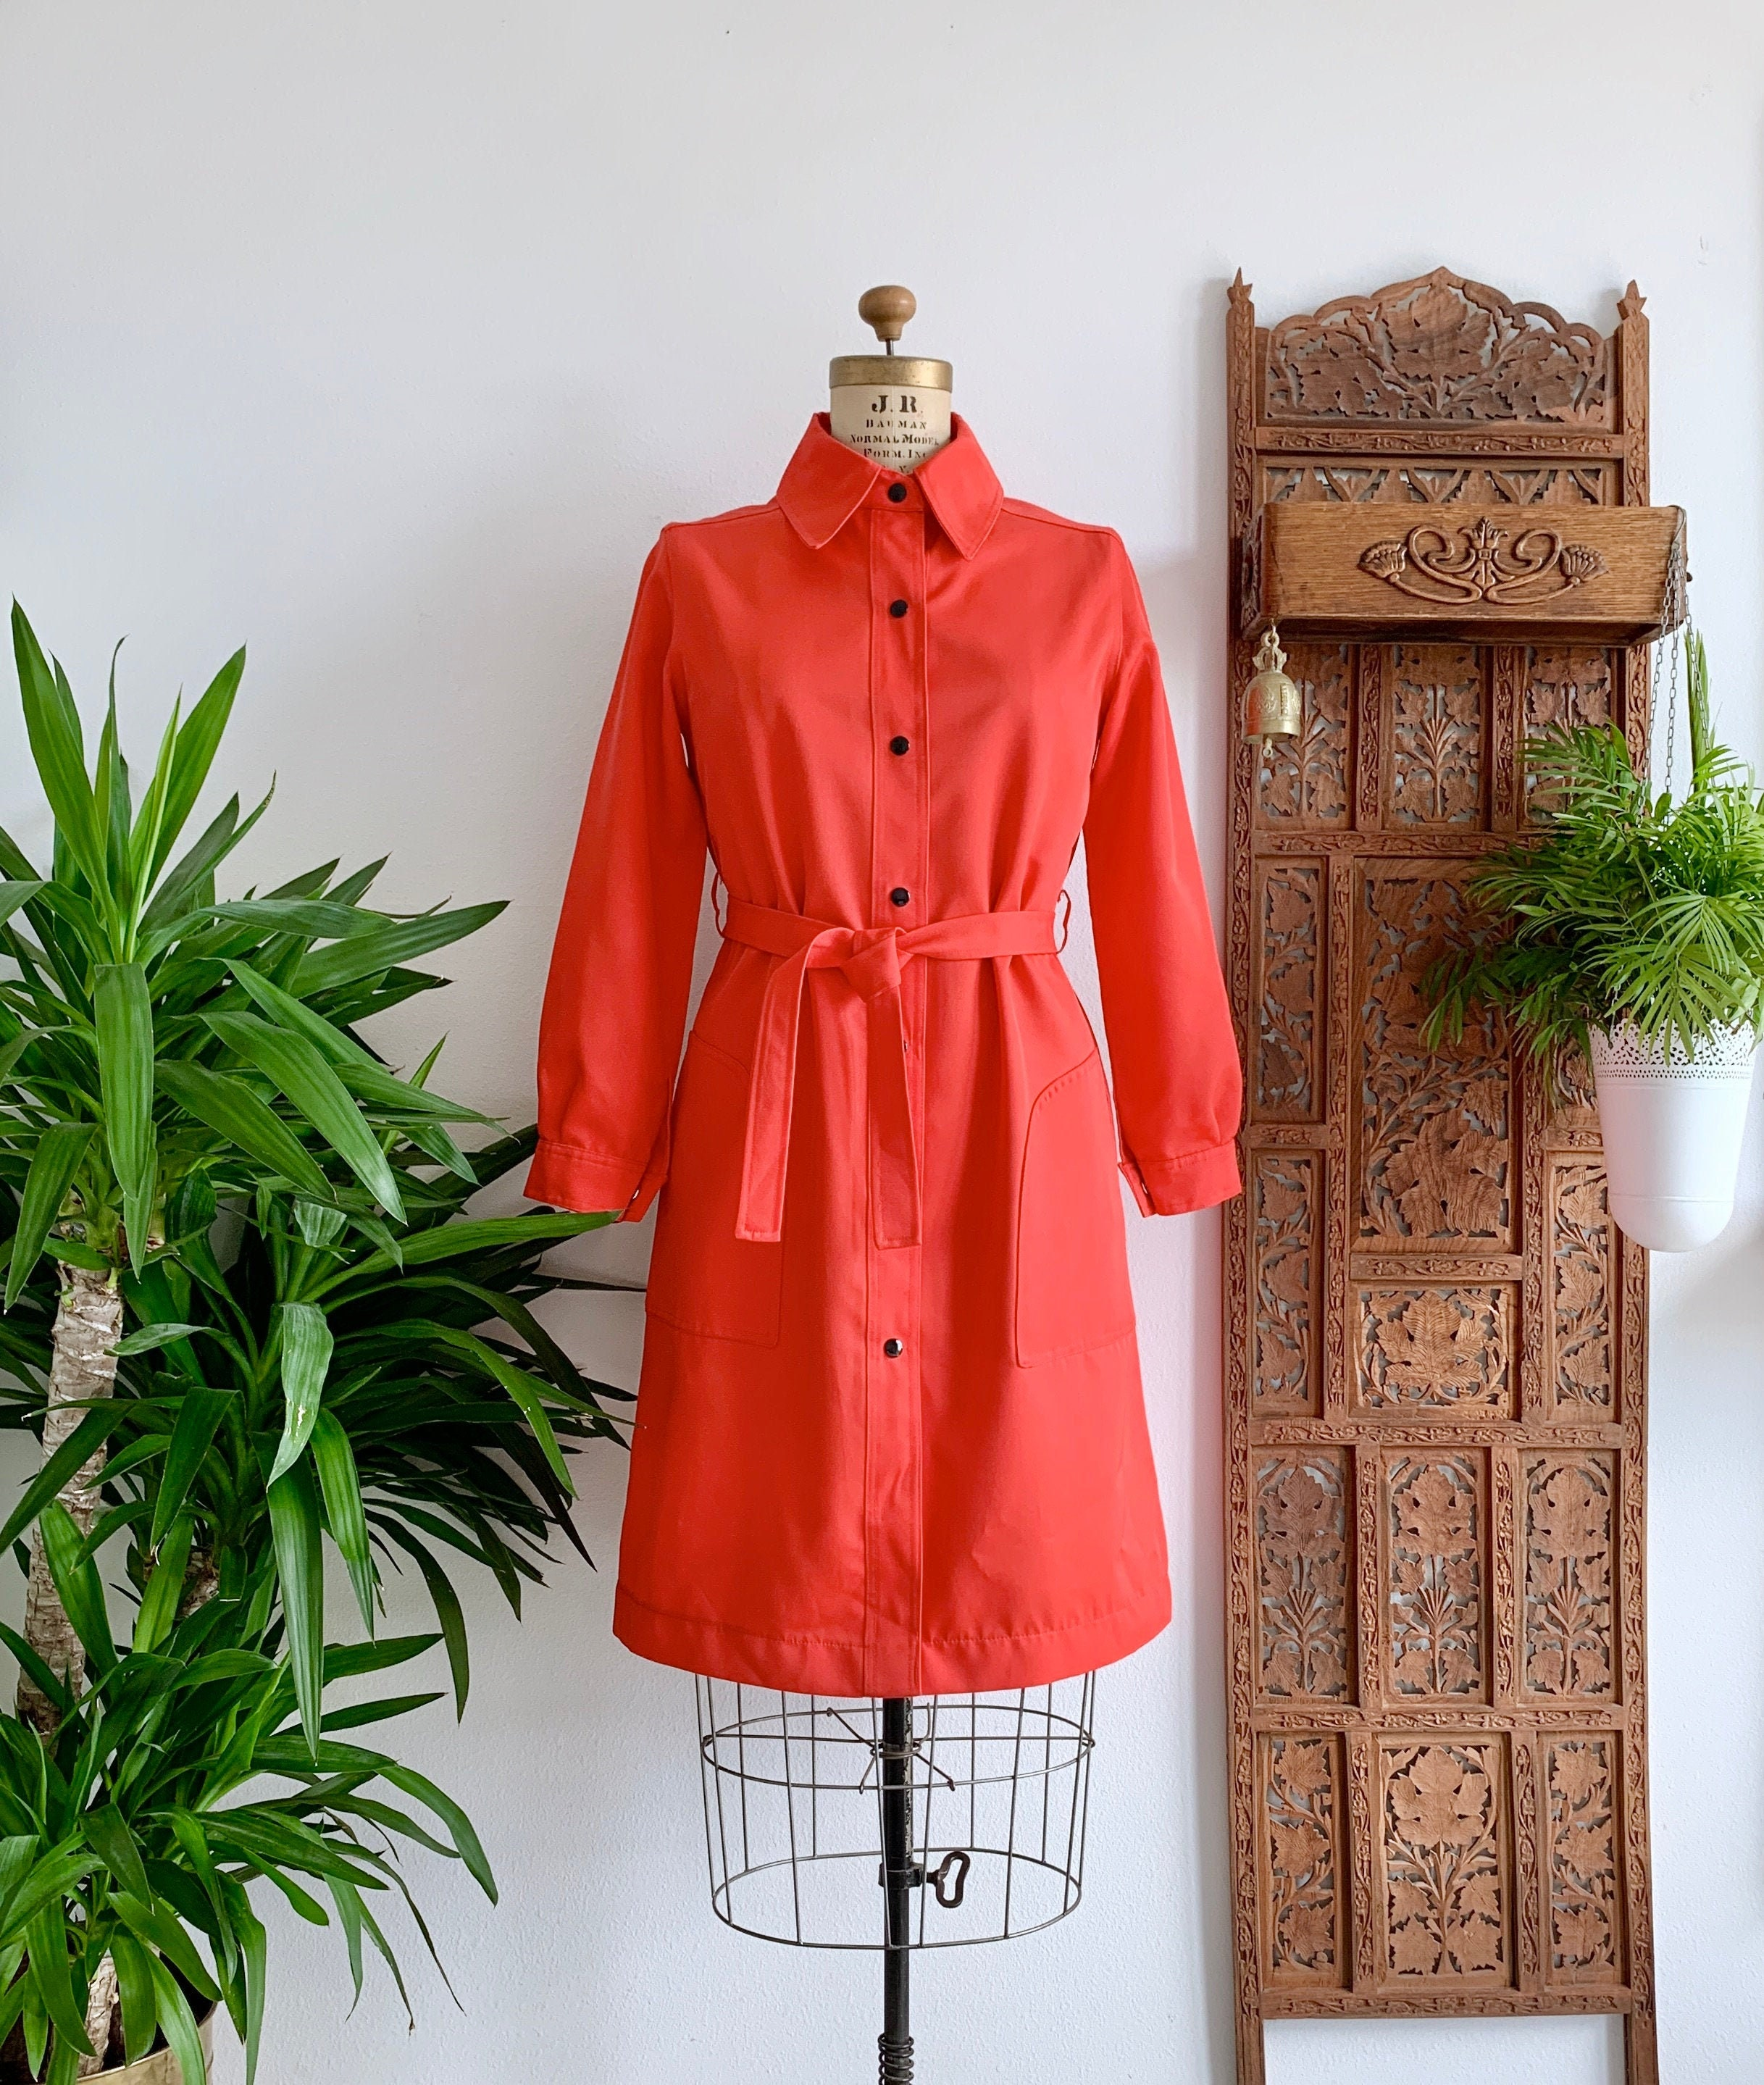 Vintage Scarf Styles -1920s to 1960s 60S Red Trench CoatMod Belted Polyester Wide Collar Swing CoatAll Weather A Line TopcoatRetro Red Raincoat41Long40Chest17Sleeve $0.00 AT vintagedancer.com